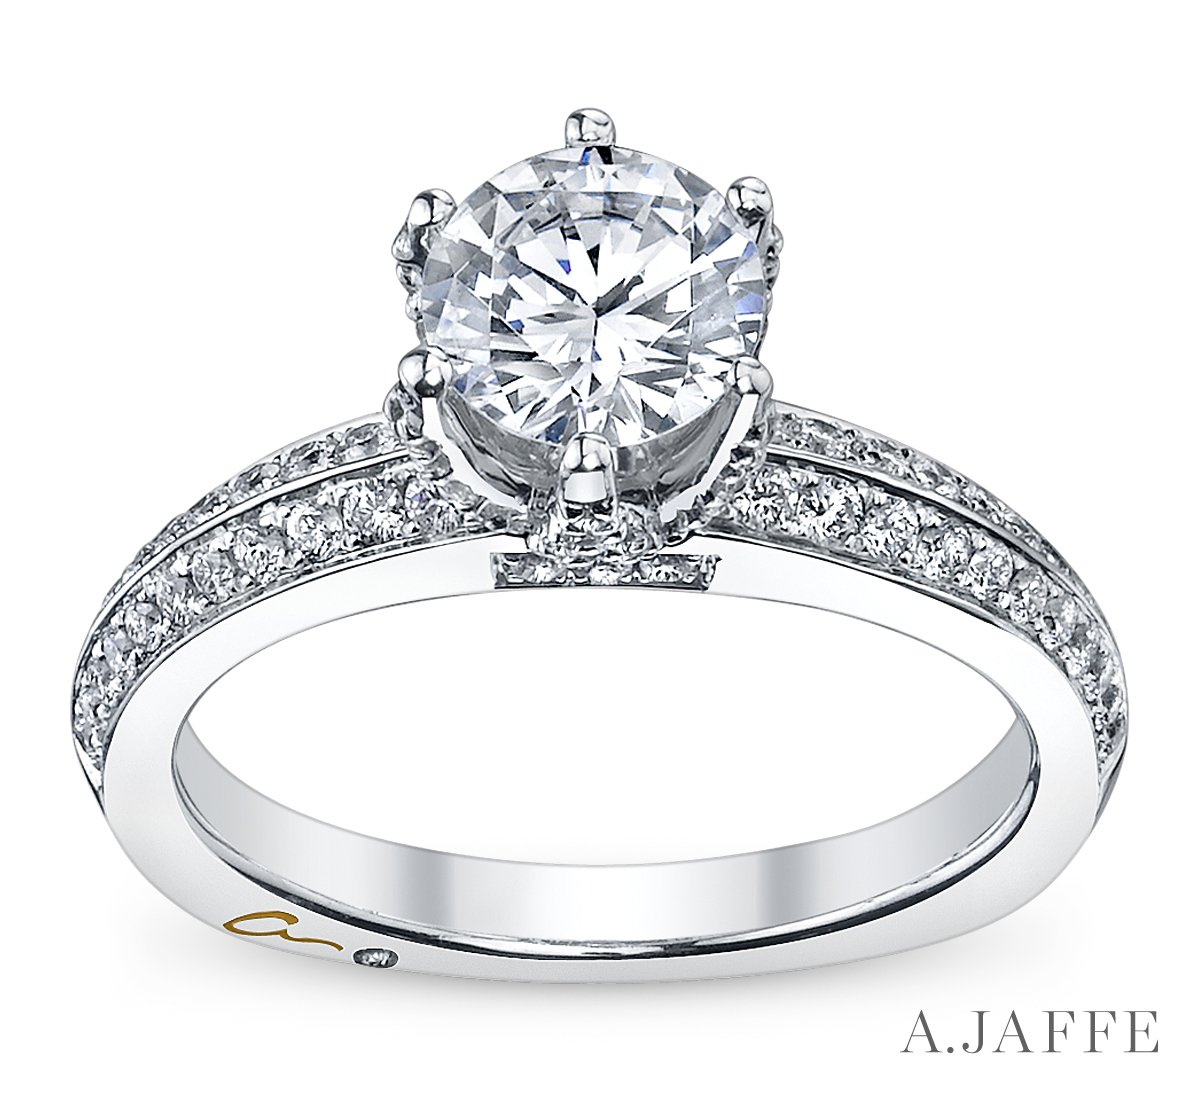 Best Engagement Ring Designers Wedding and Bridal Inspiration